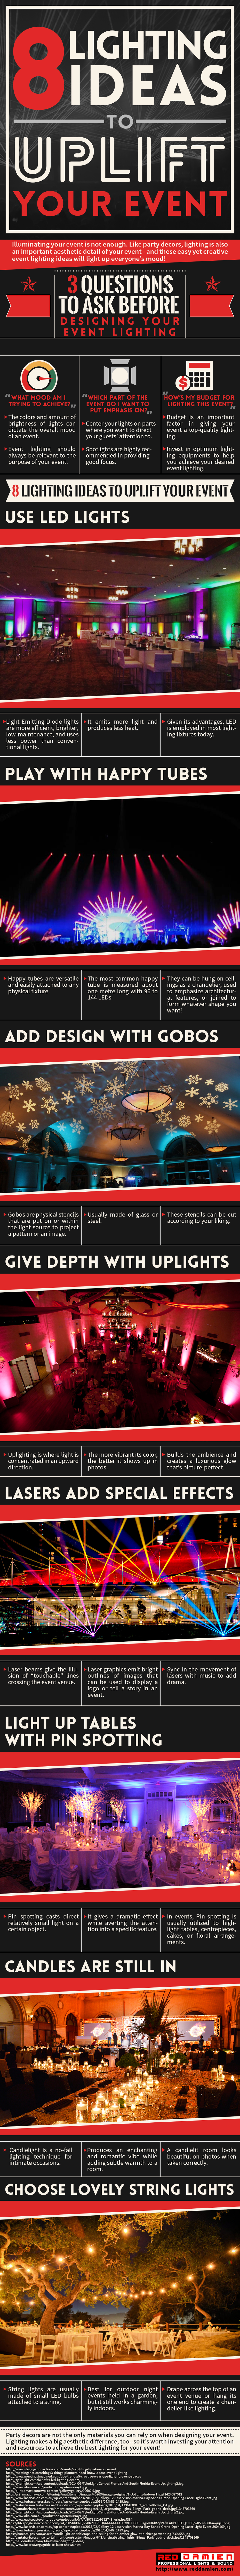 8 Event Lighting Ideas to Uplift Your Event